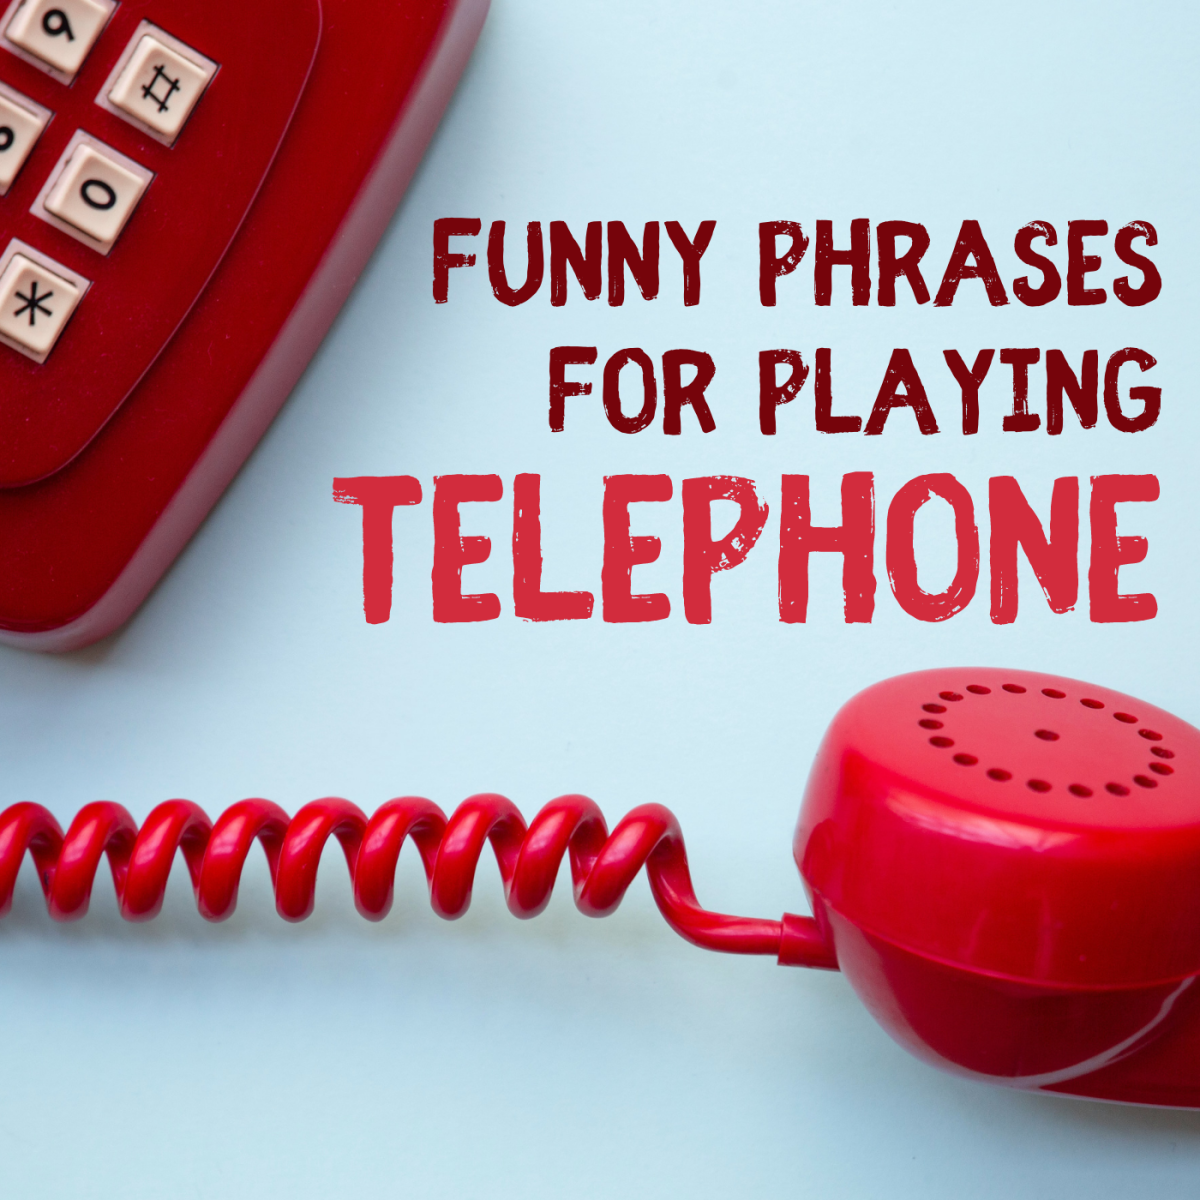 Need some ideas for what to whisper during the Telephone Game? Find more than 100 prompts here!